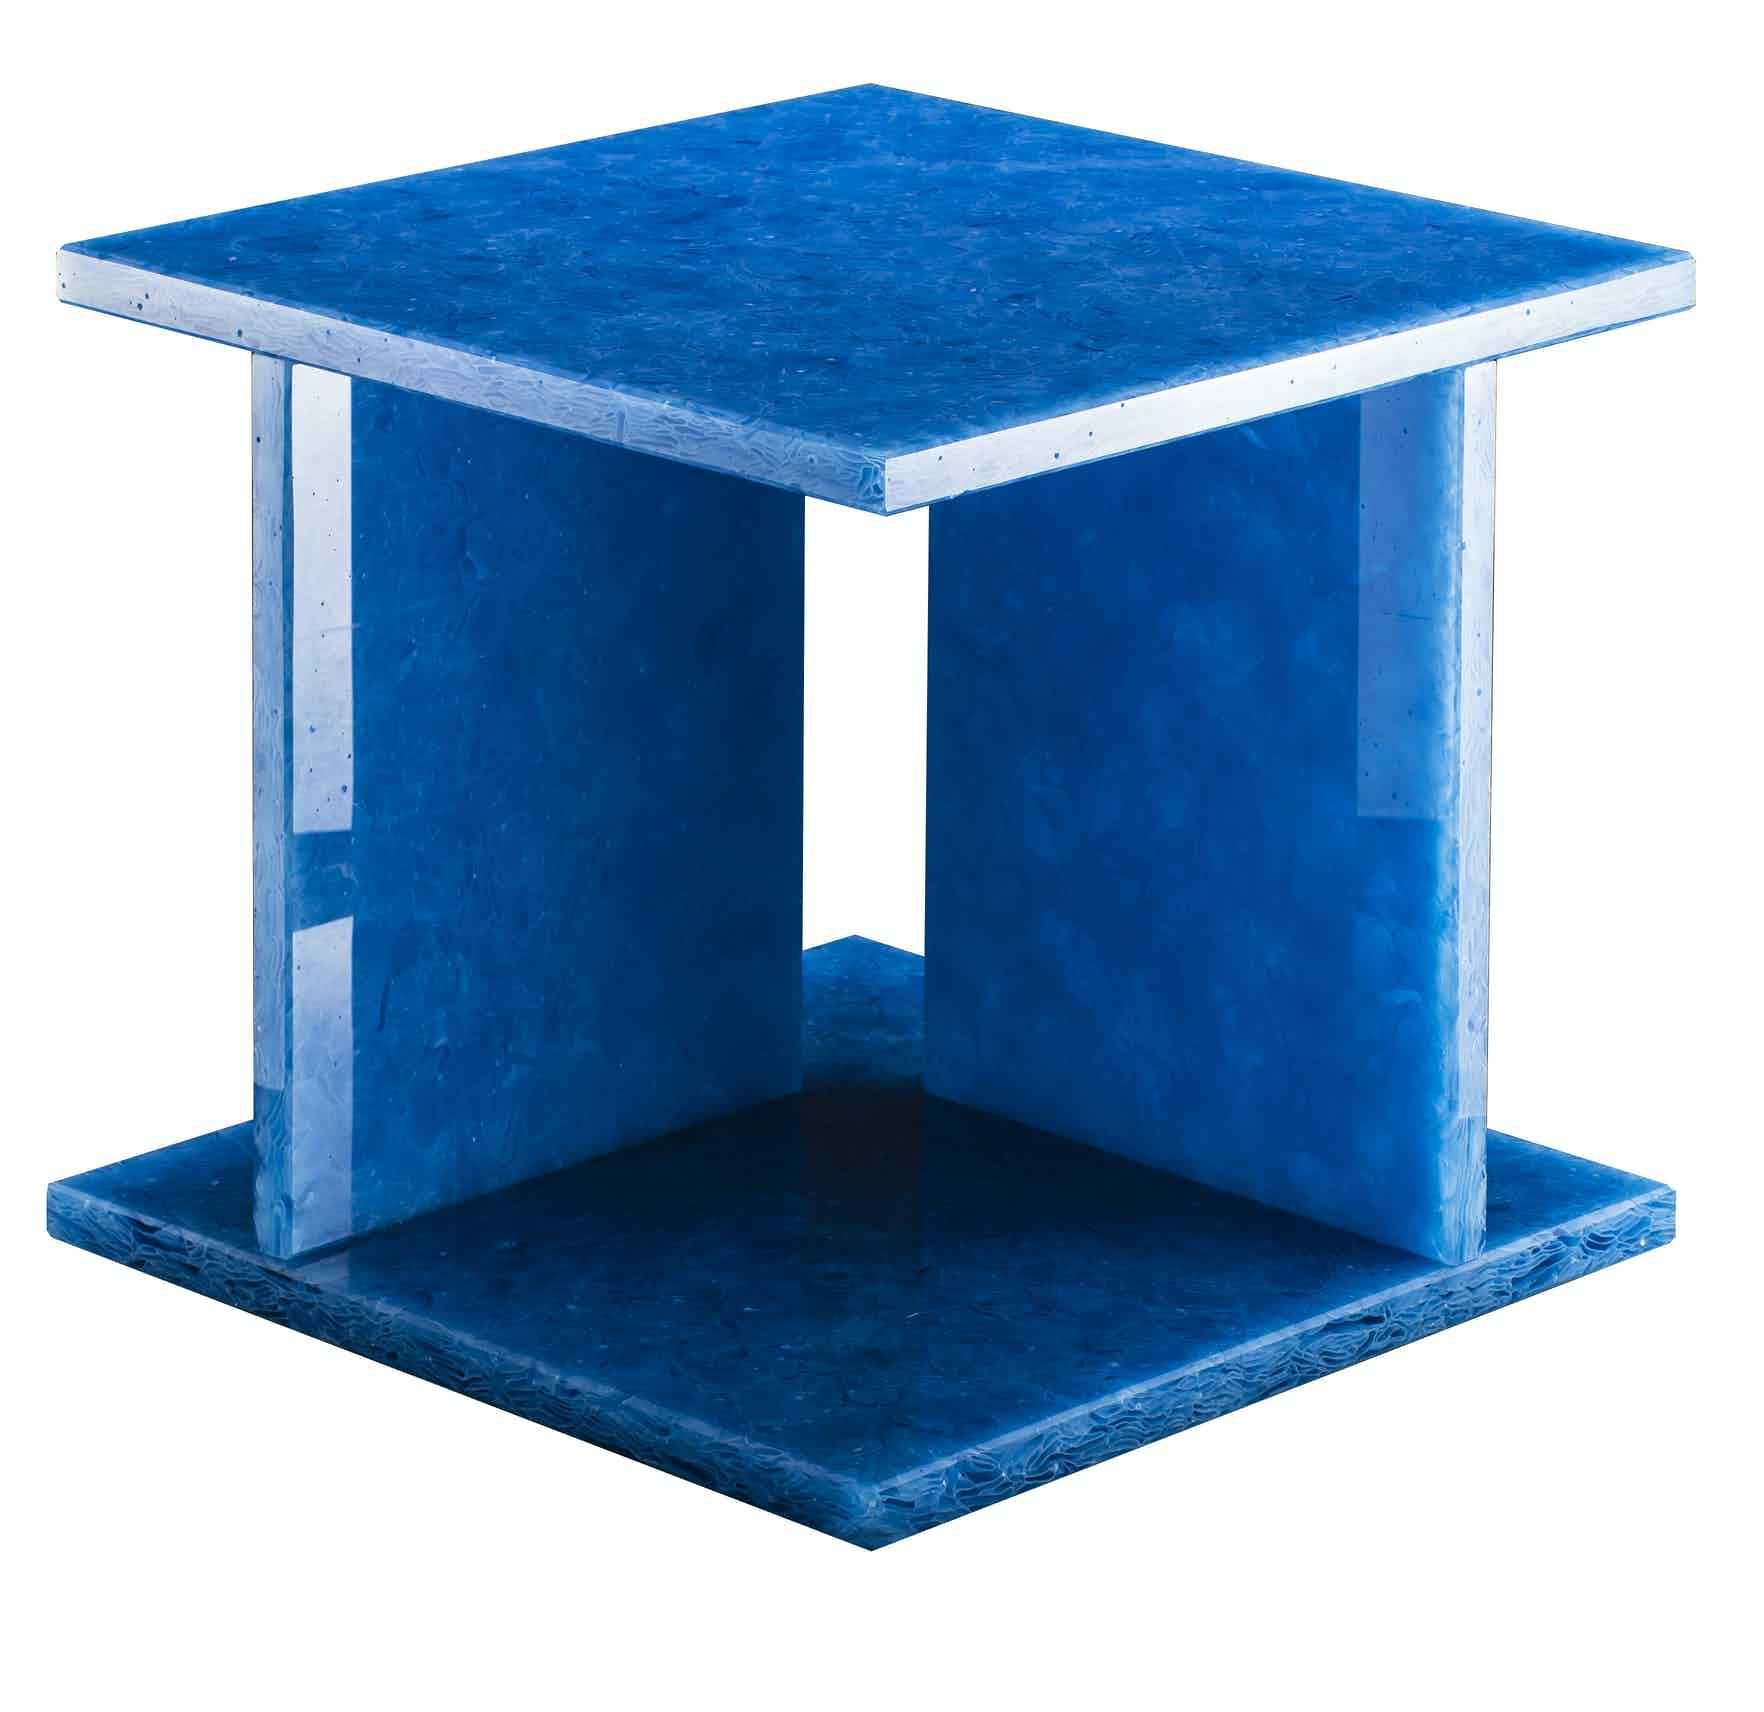 Pulpo-font-table-low-blue-haute-living